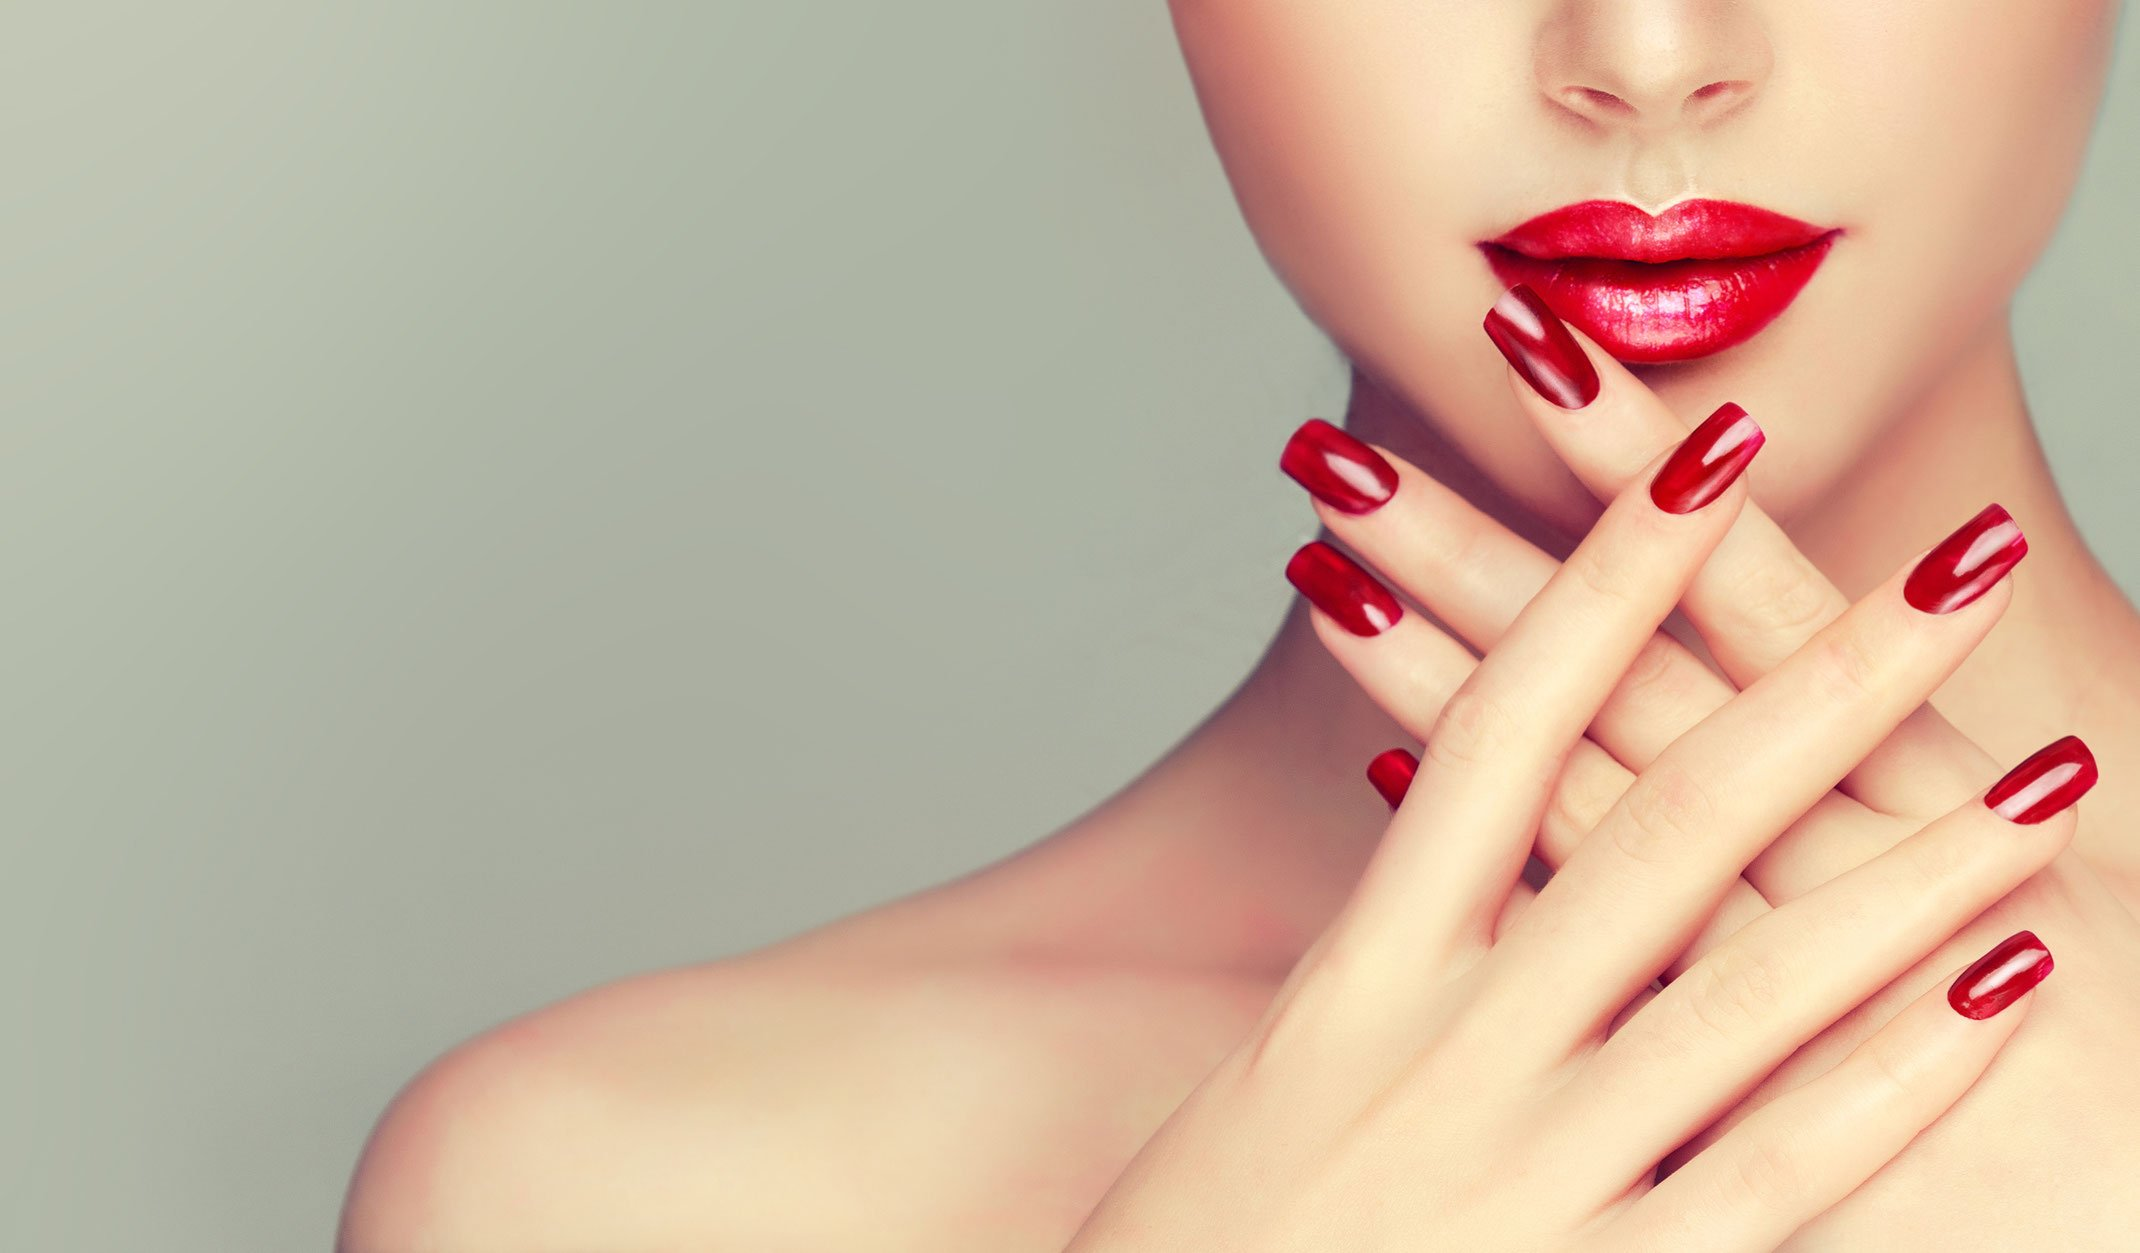 7 Beauty Tips and Beauty Trends for 2019 - Thrive Global